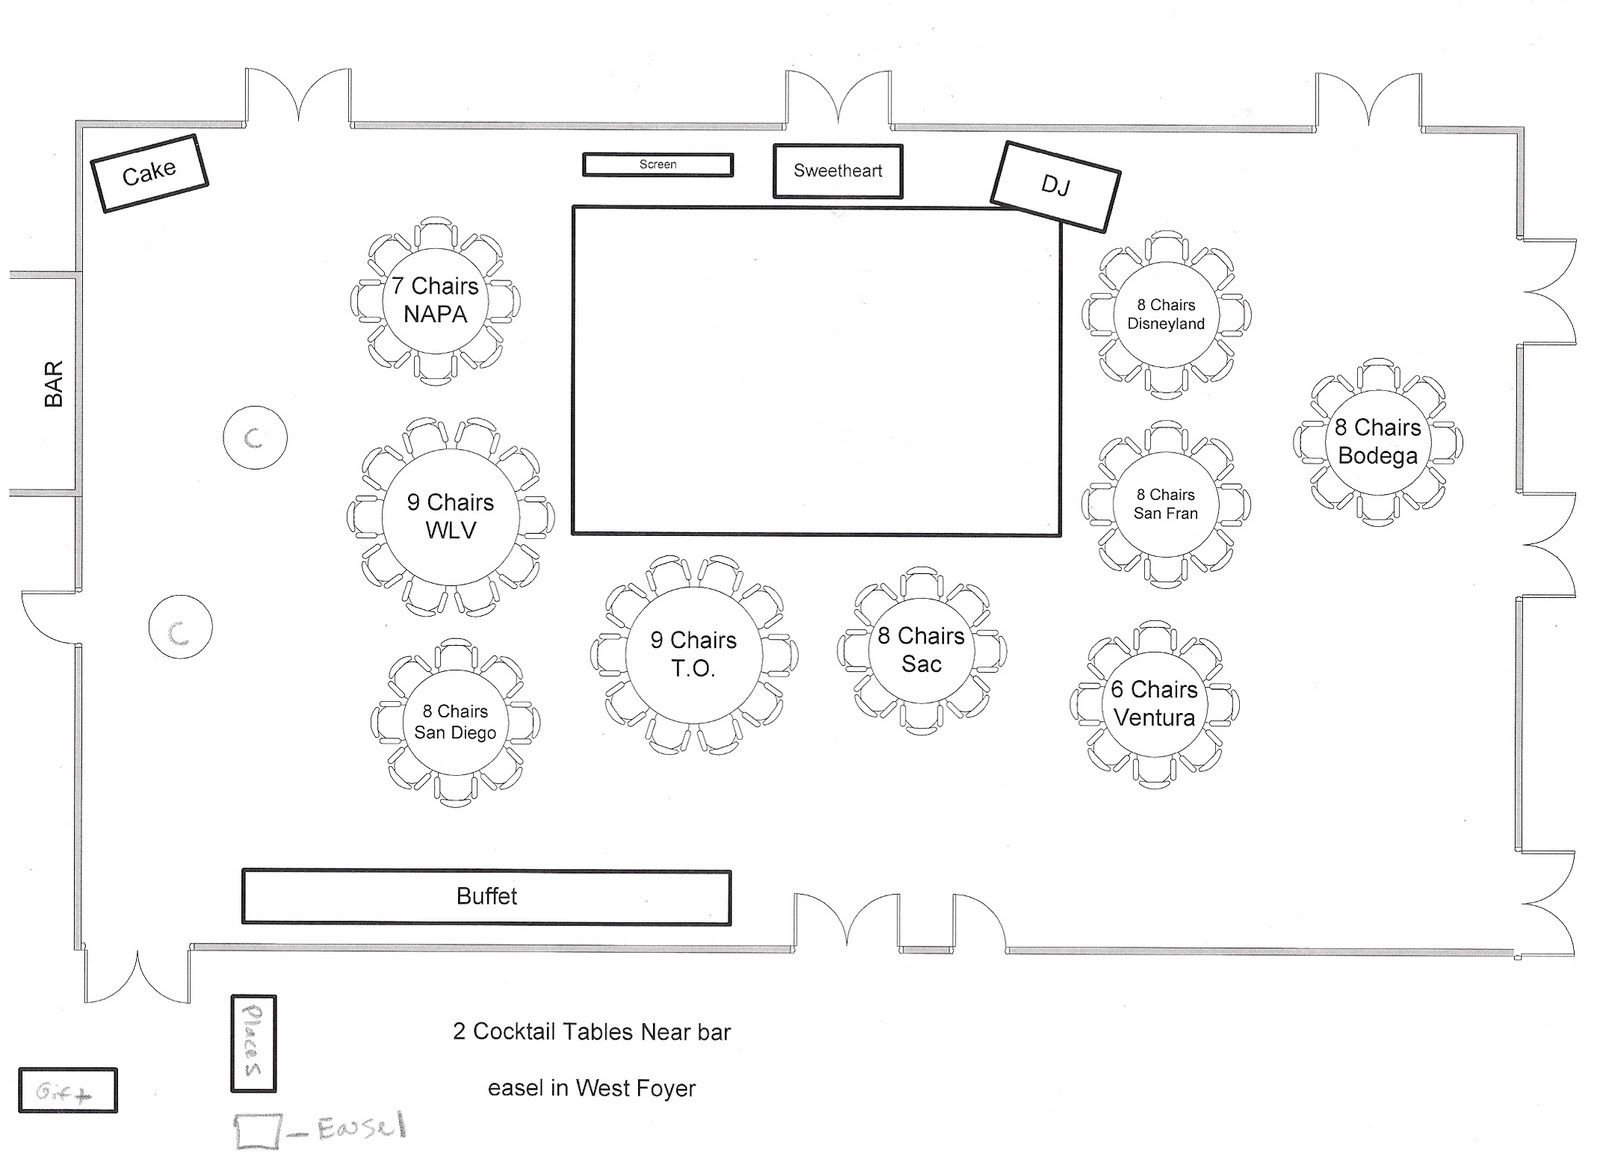 Sample Seating Chart And Floor Plan